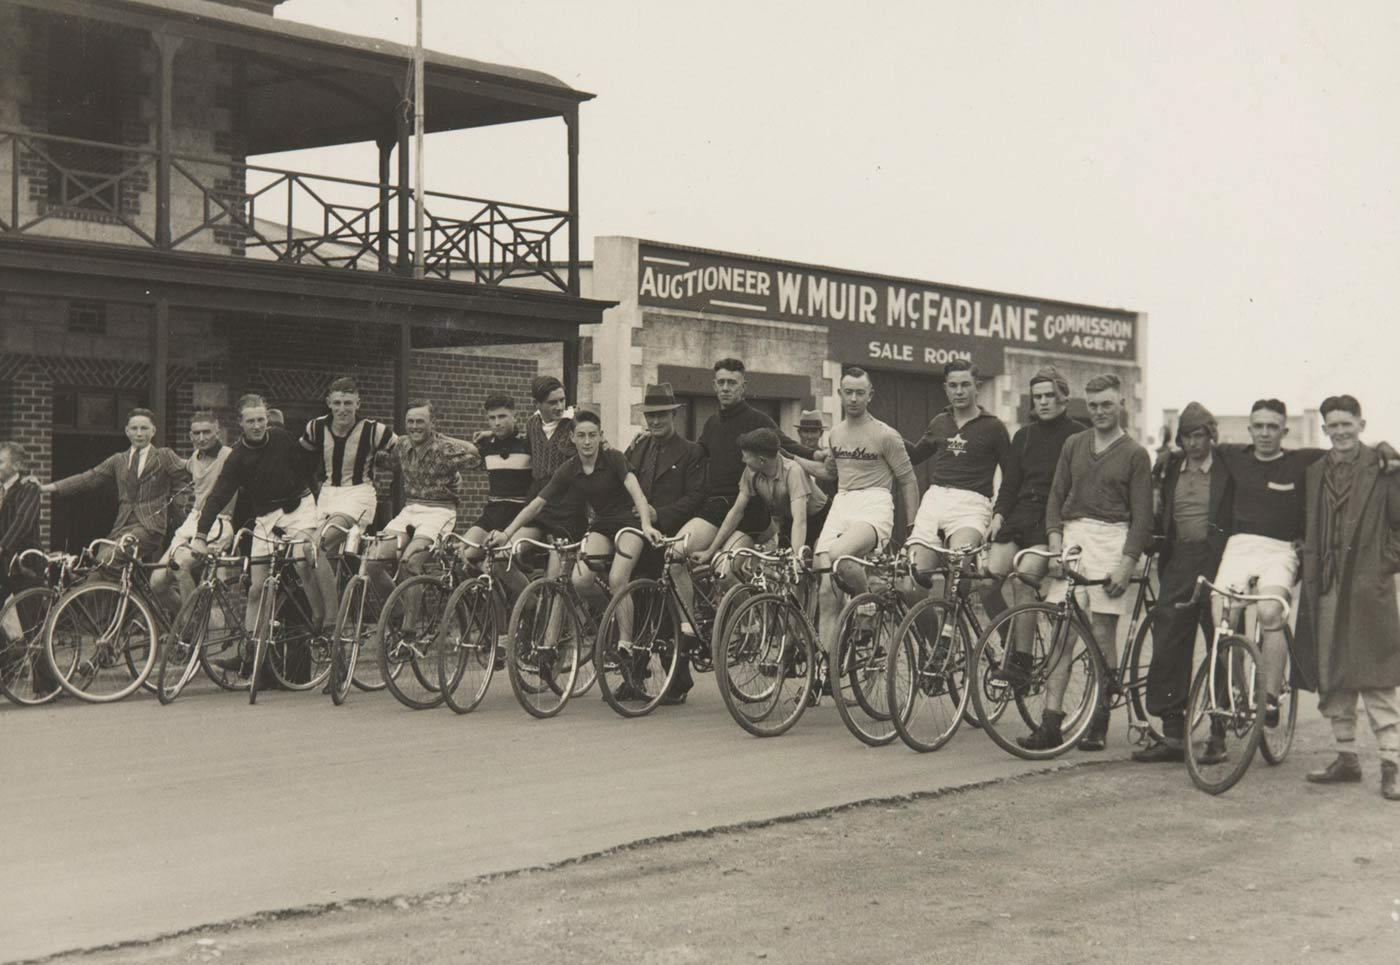 Local riders line up at the start an open race in Broken Hill, New South Wales, about 1940. - click to view larger image